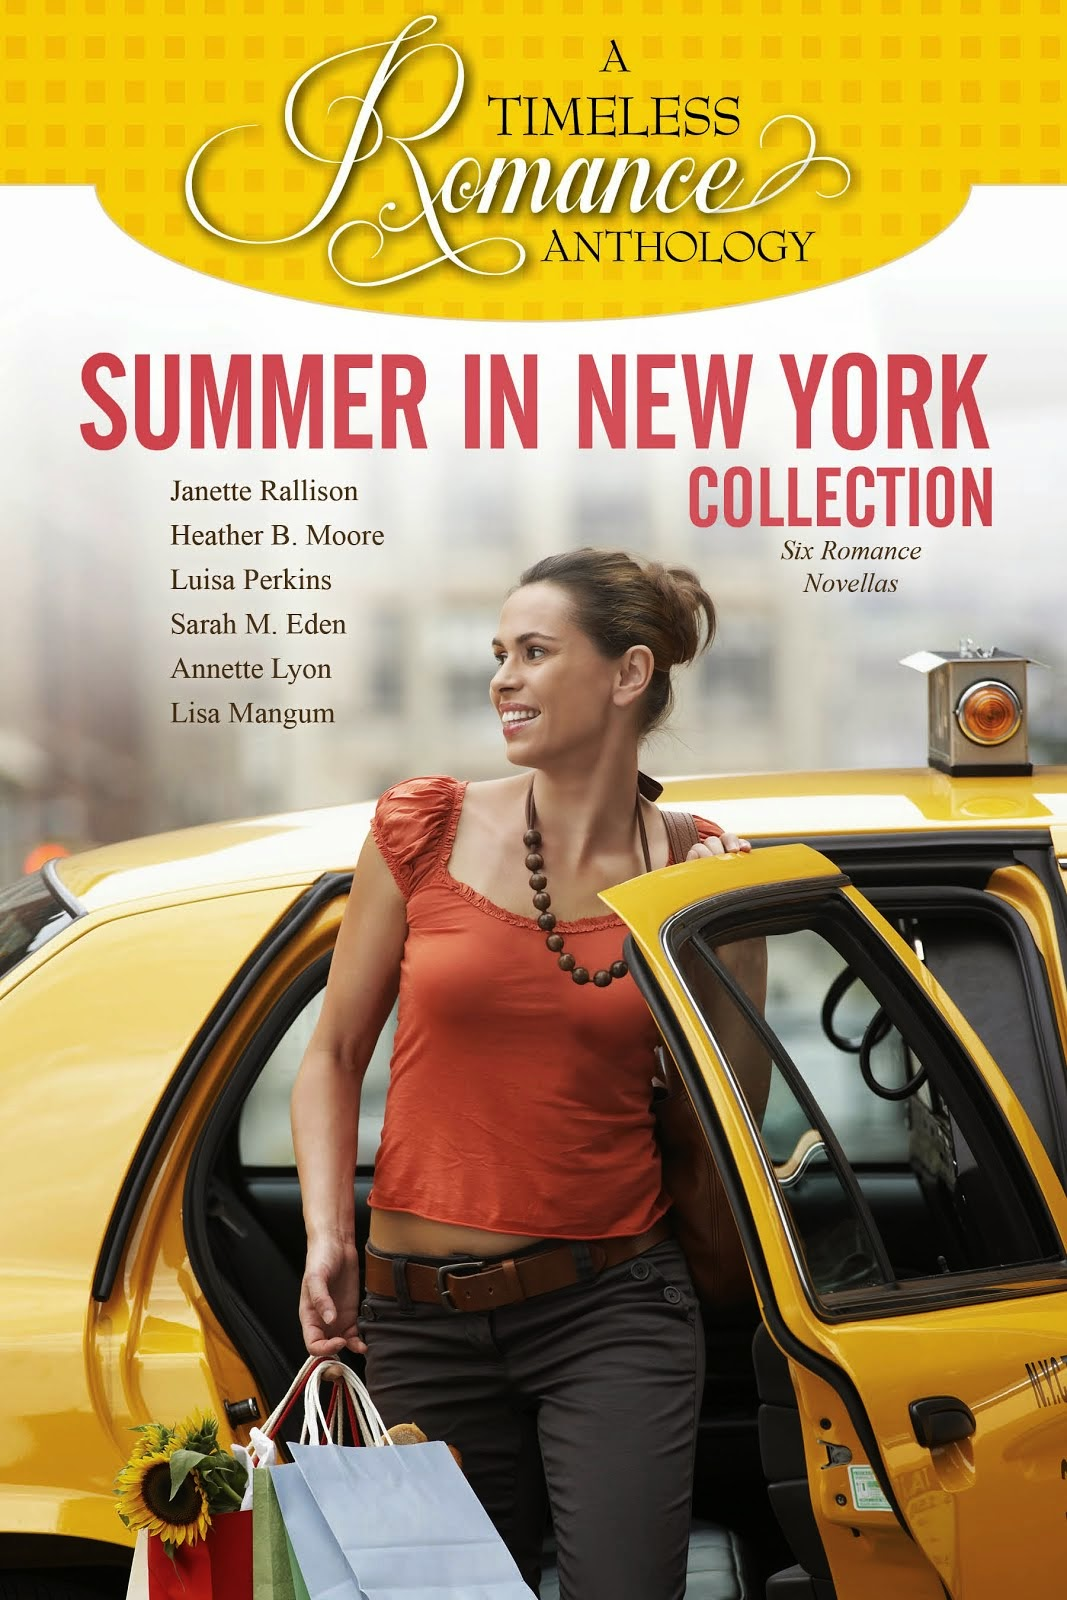 Our newest release: Summer in New York Collection